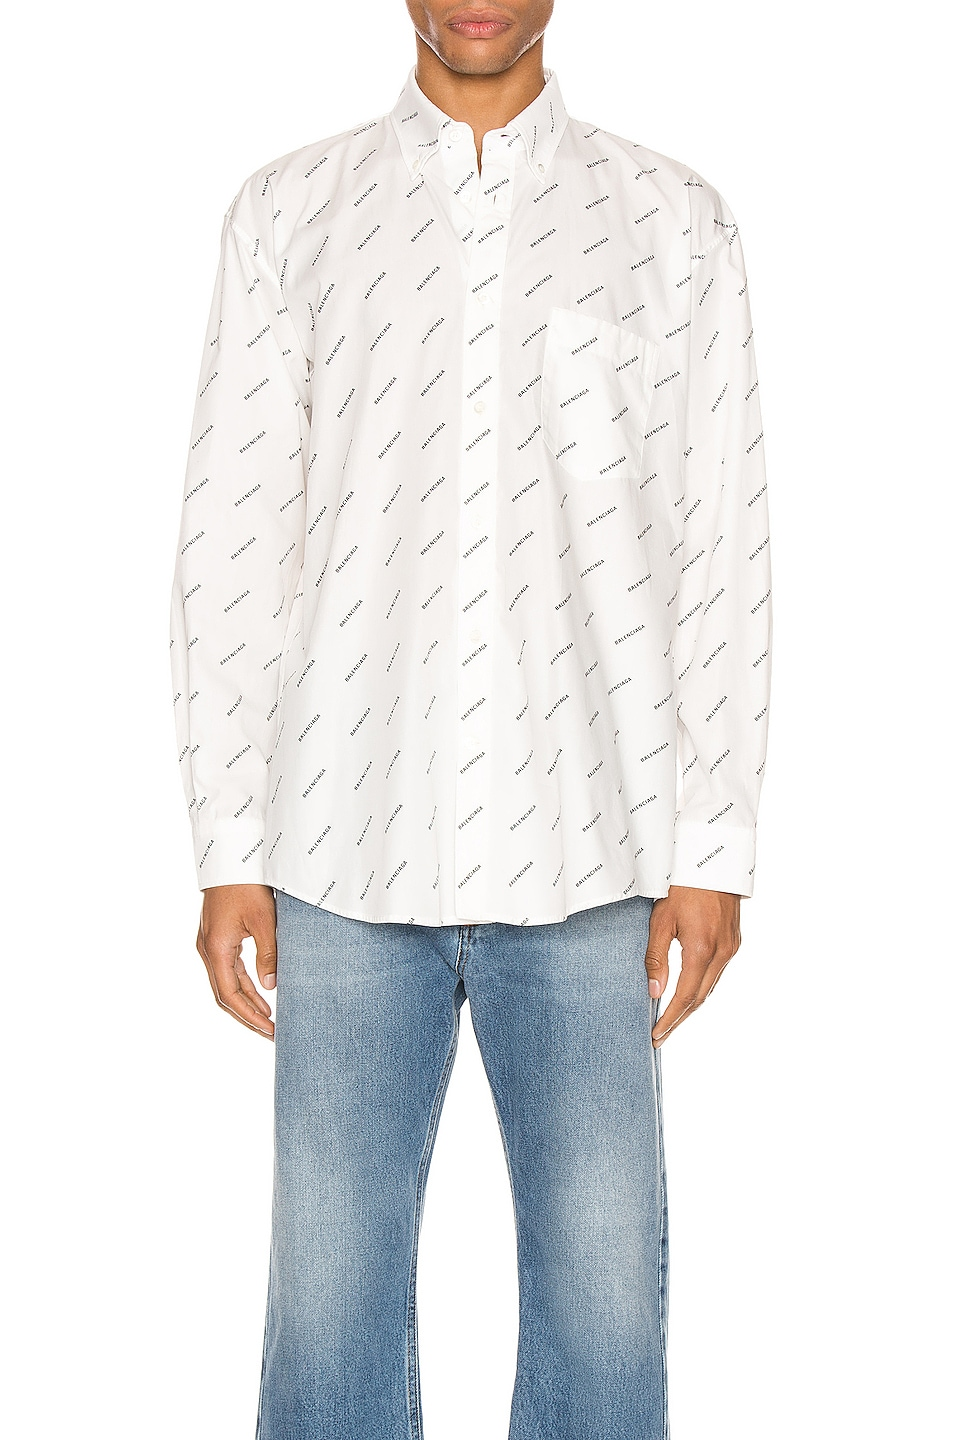 Image 1 of Balenciaga Normal Fit Long Sleeve Shirt in White & Black